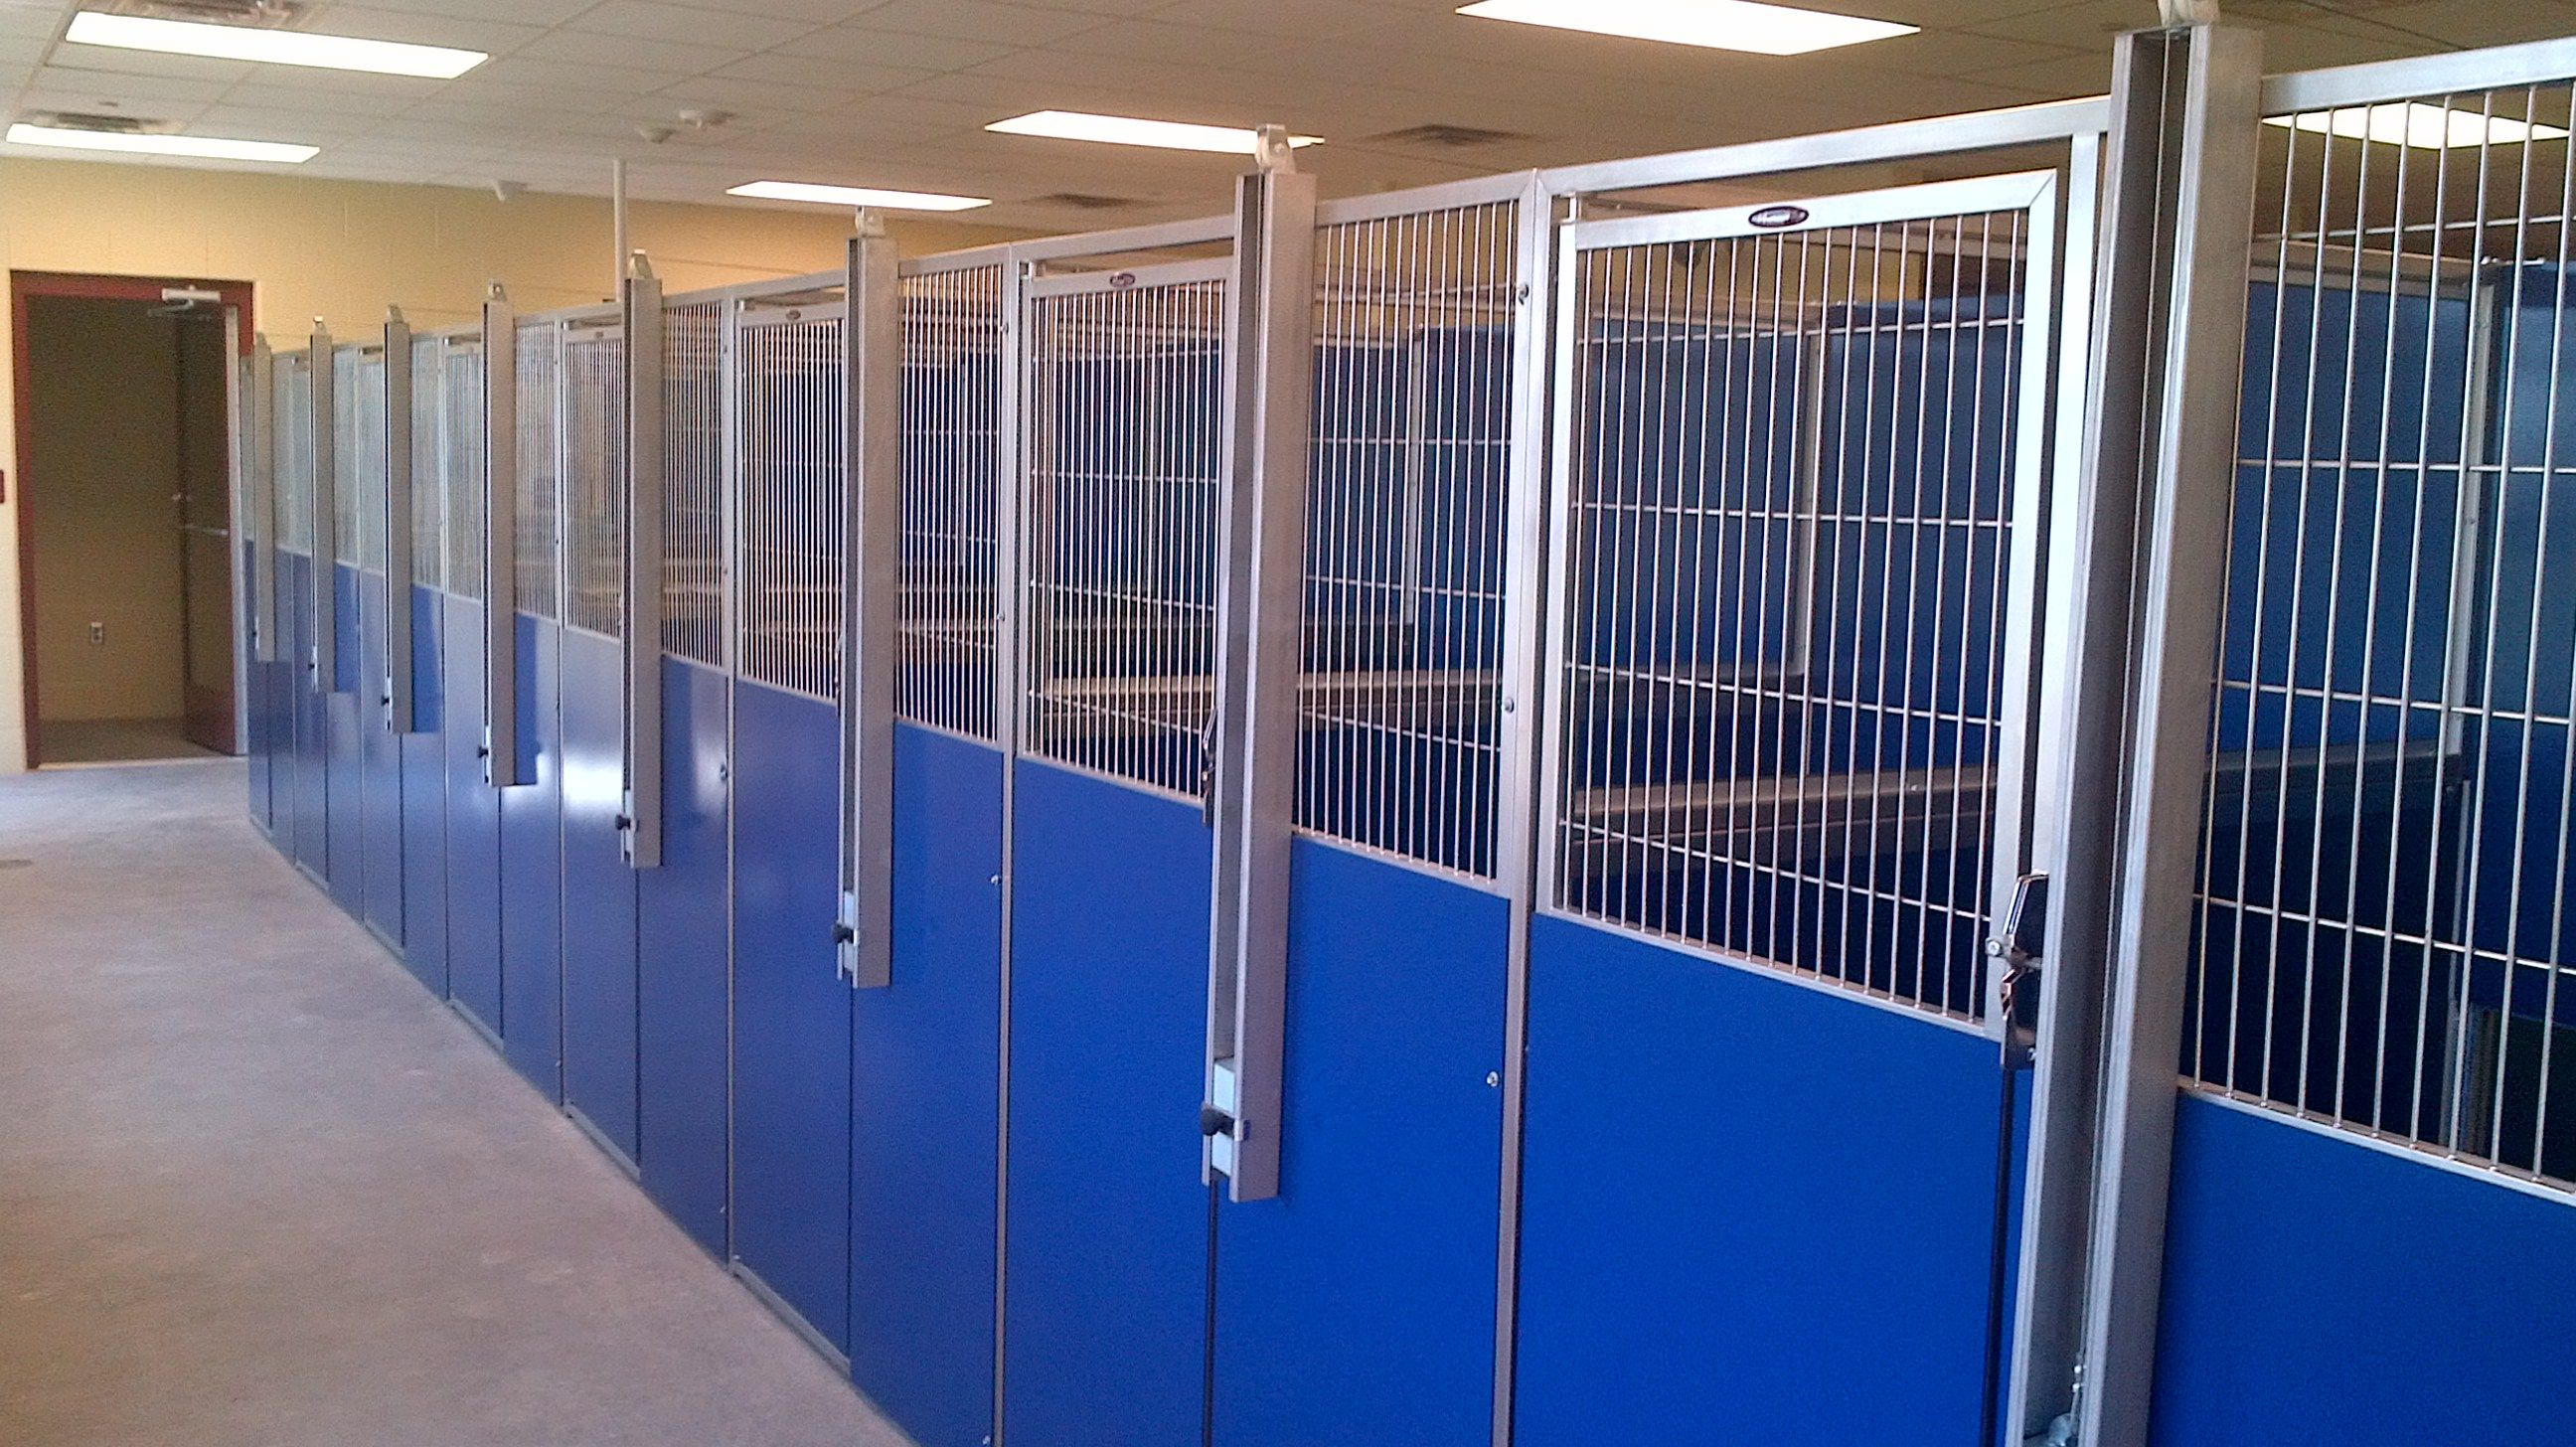 Shor Line T Kennel Pvc And Stainless Steel Kennel Run